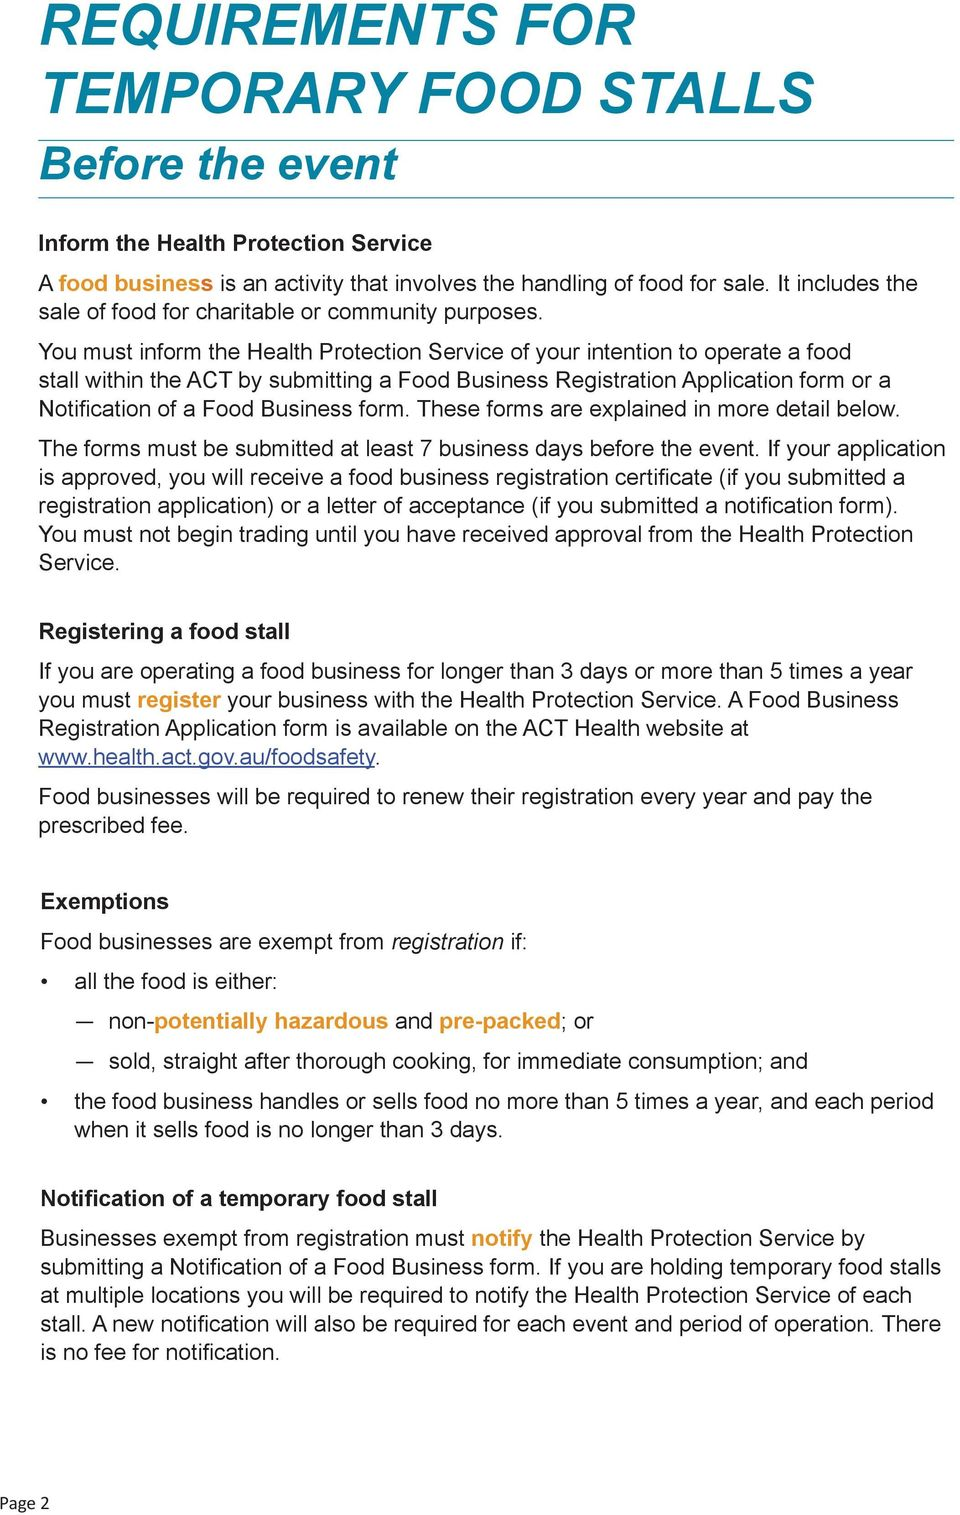 You must inform the Health Protection Service of your intention to operate a food stall within the ACT by submitting a Food Business Registration Application form or a Notification of a Food Business